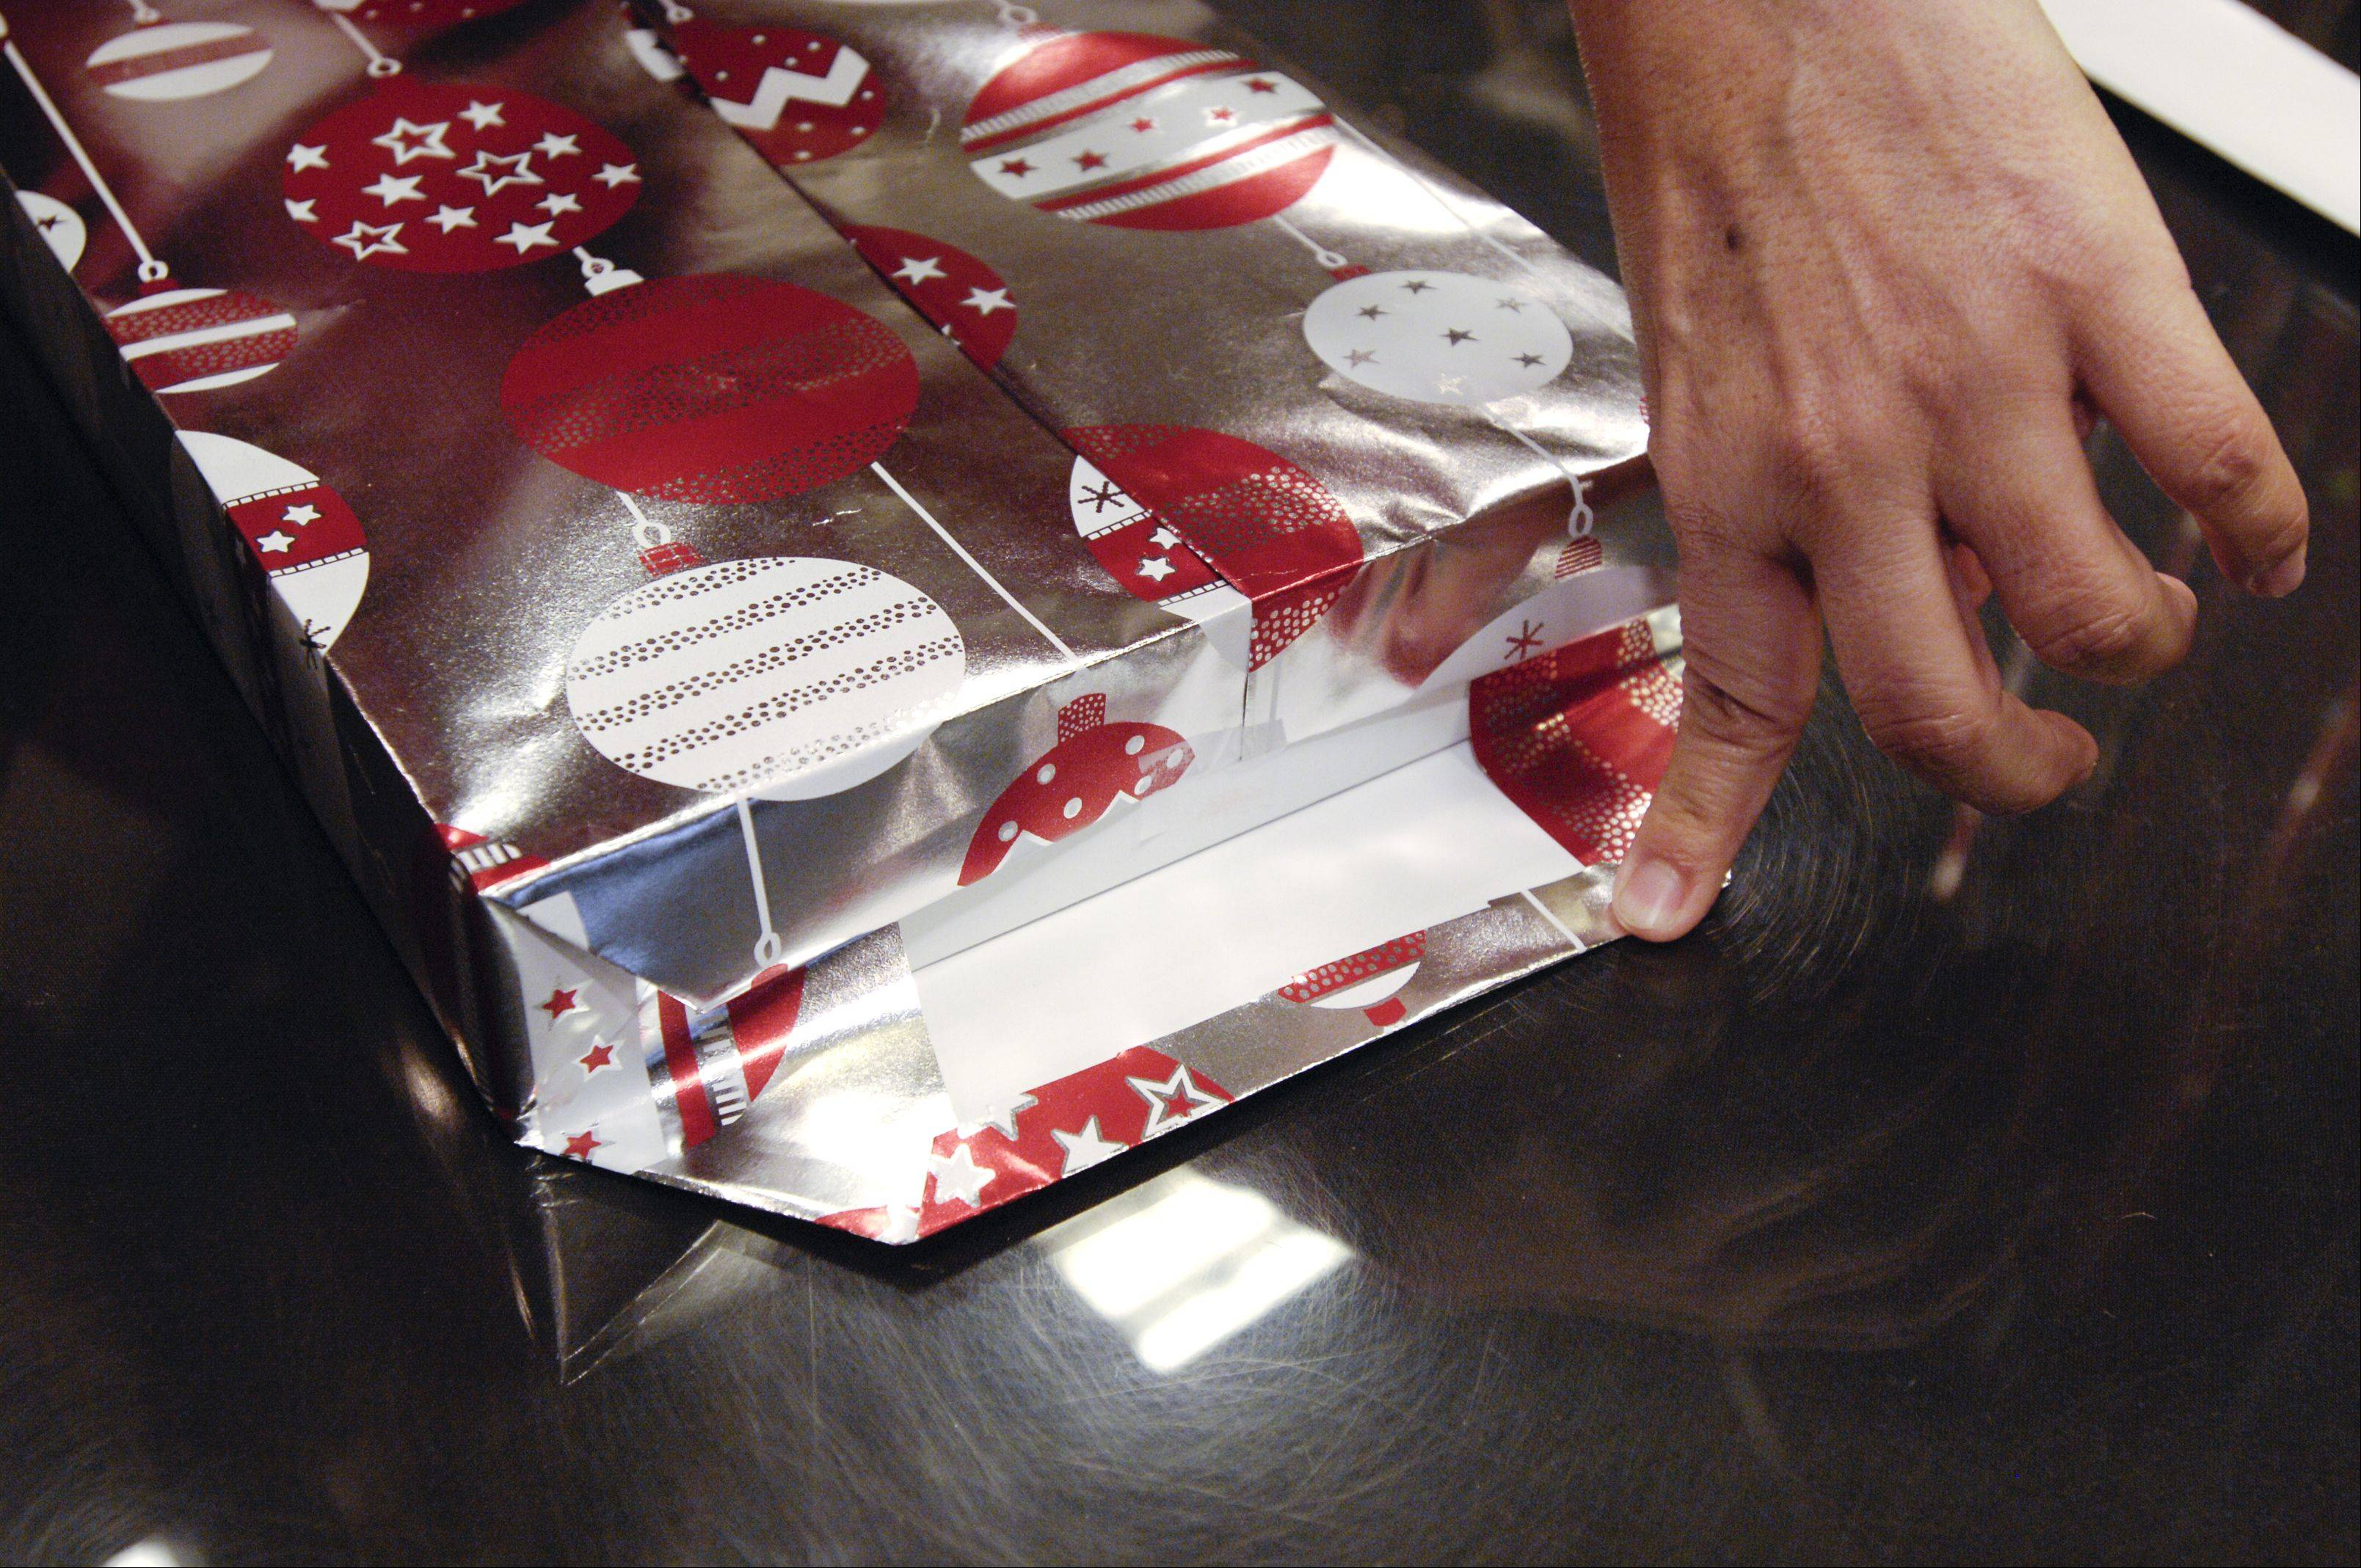 Step 7: Fold the ends into triangles and fold the top edge. Tape to the side of the box.